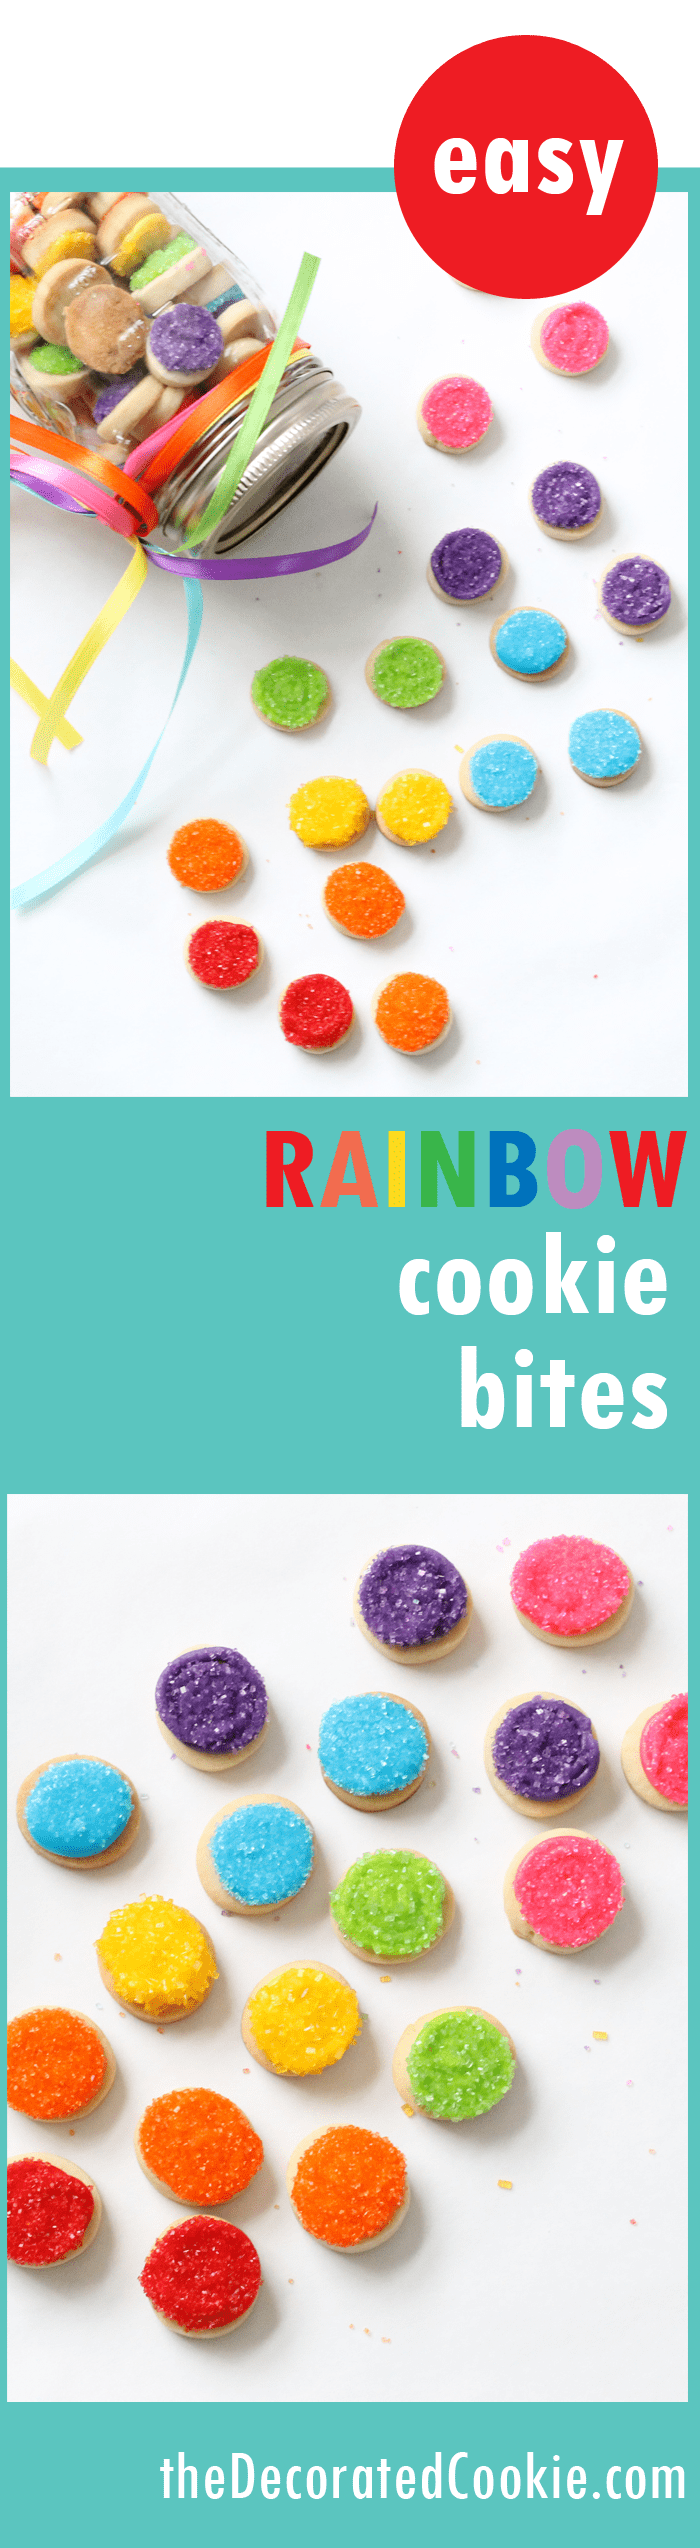 EASY rainbow cookie bites